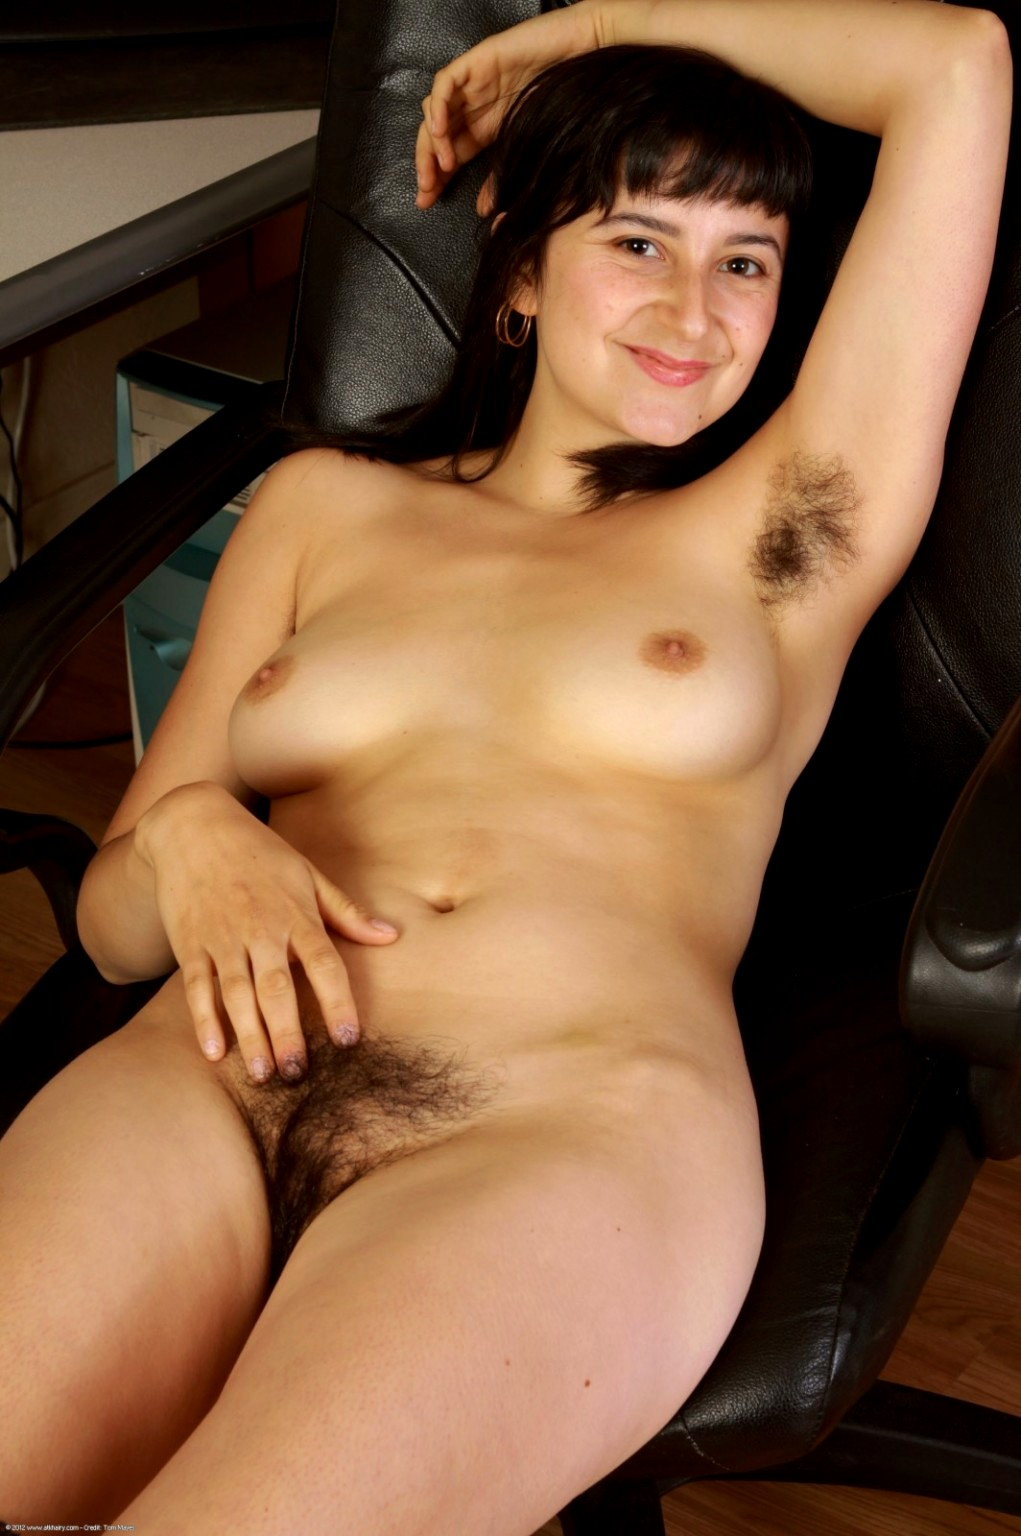 Babe Today Nude And Hairy Altaira Wednesday Nude And Hairy -9205